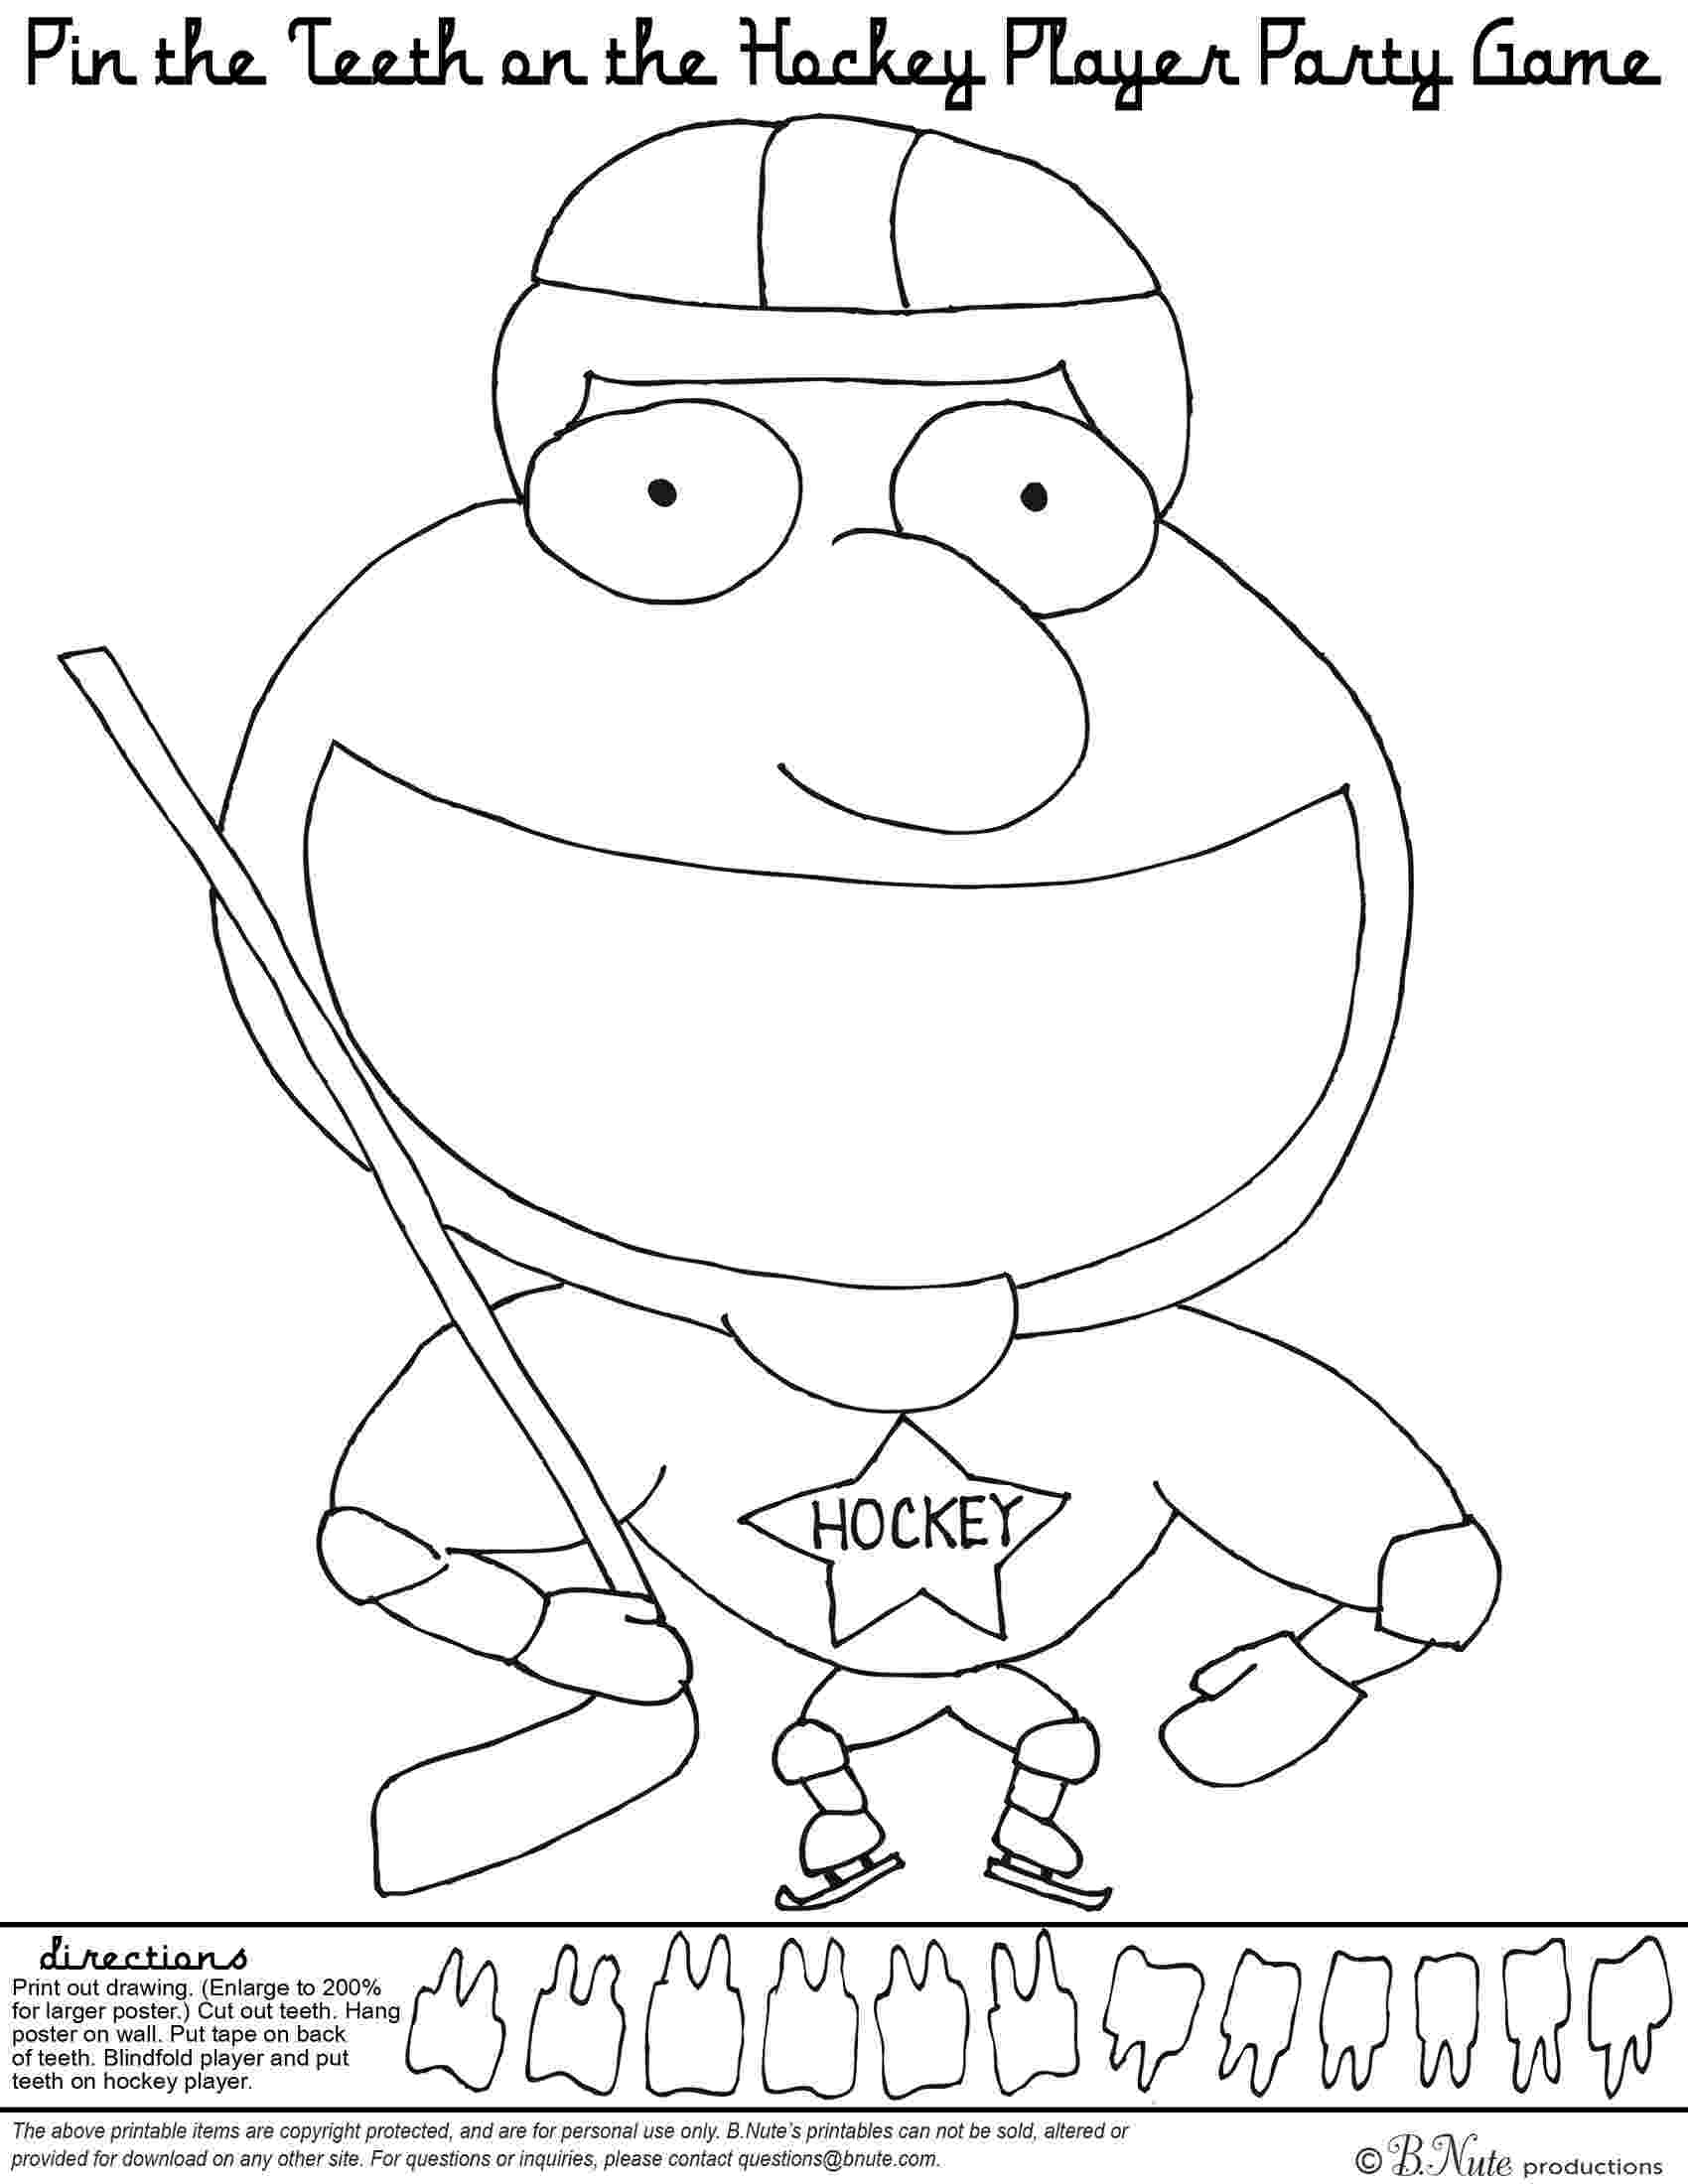 printable hockey pictures free printable hockey coloring pages for kids cool2bkids hockey printable pictures